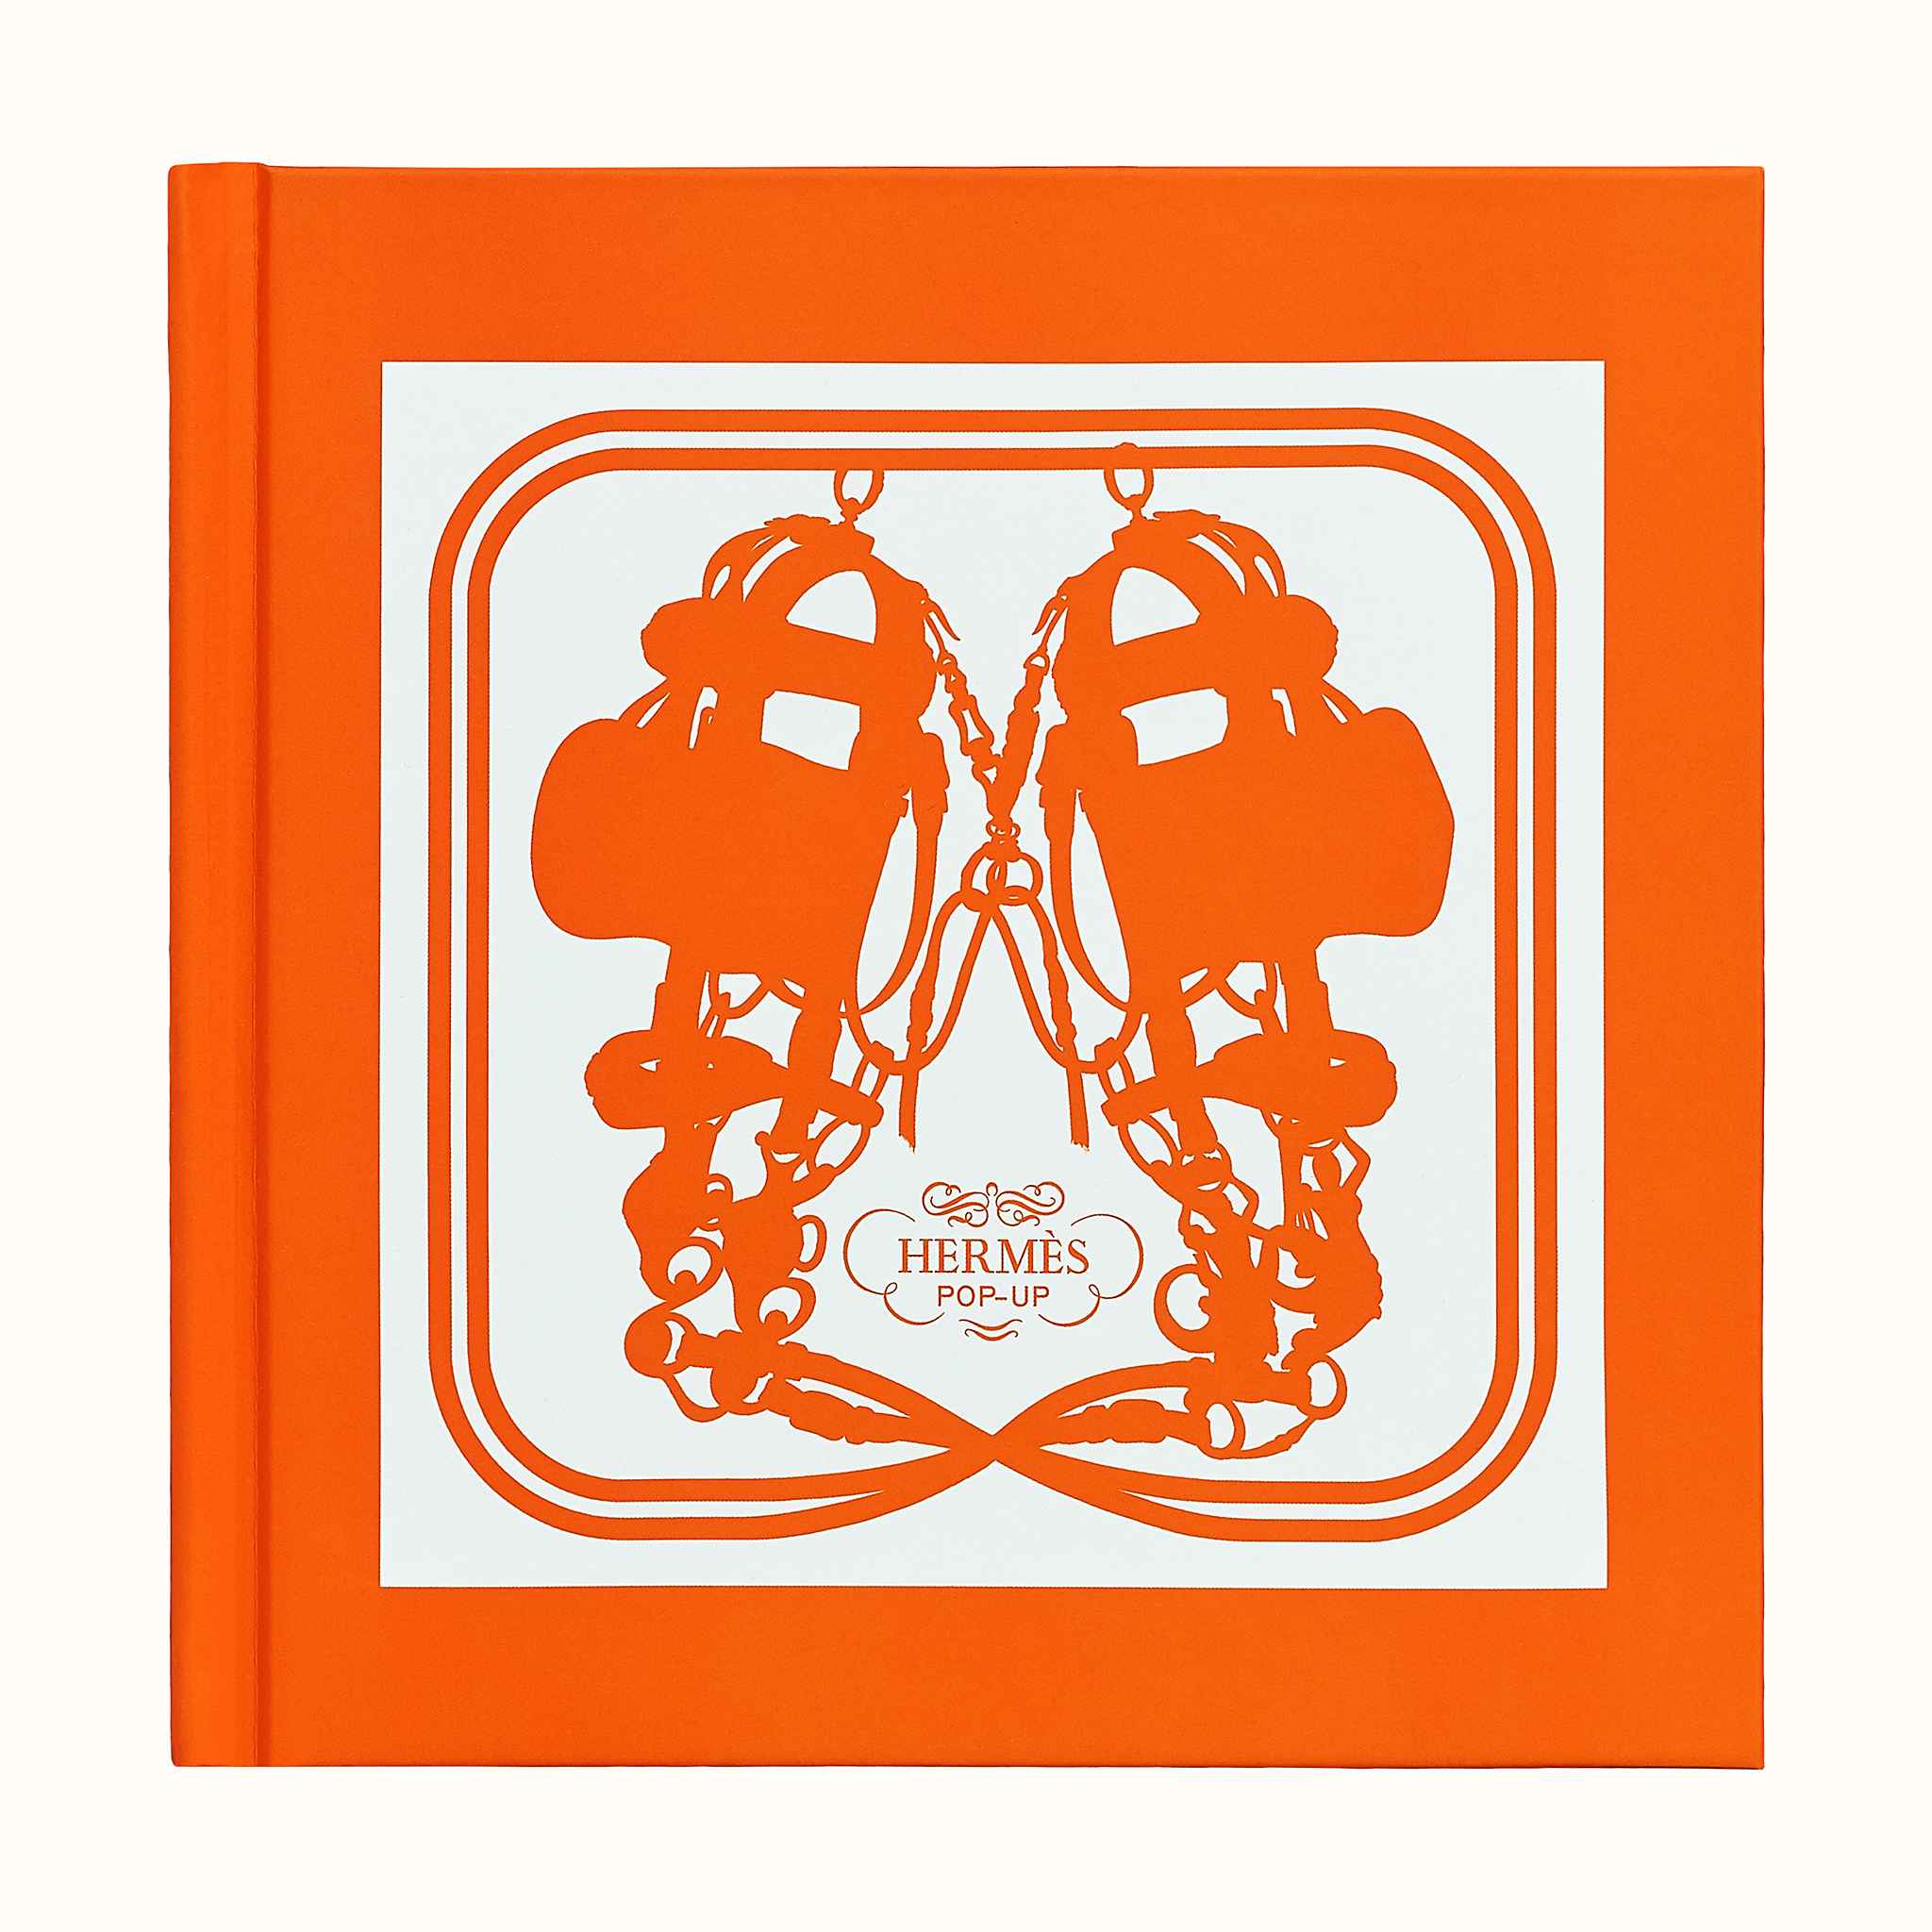 herm%C3%A8s libro  Pop-Up Hermes book | Hermès